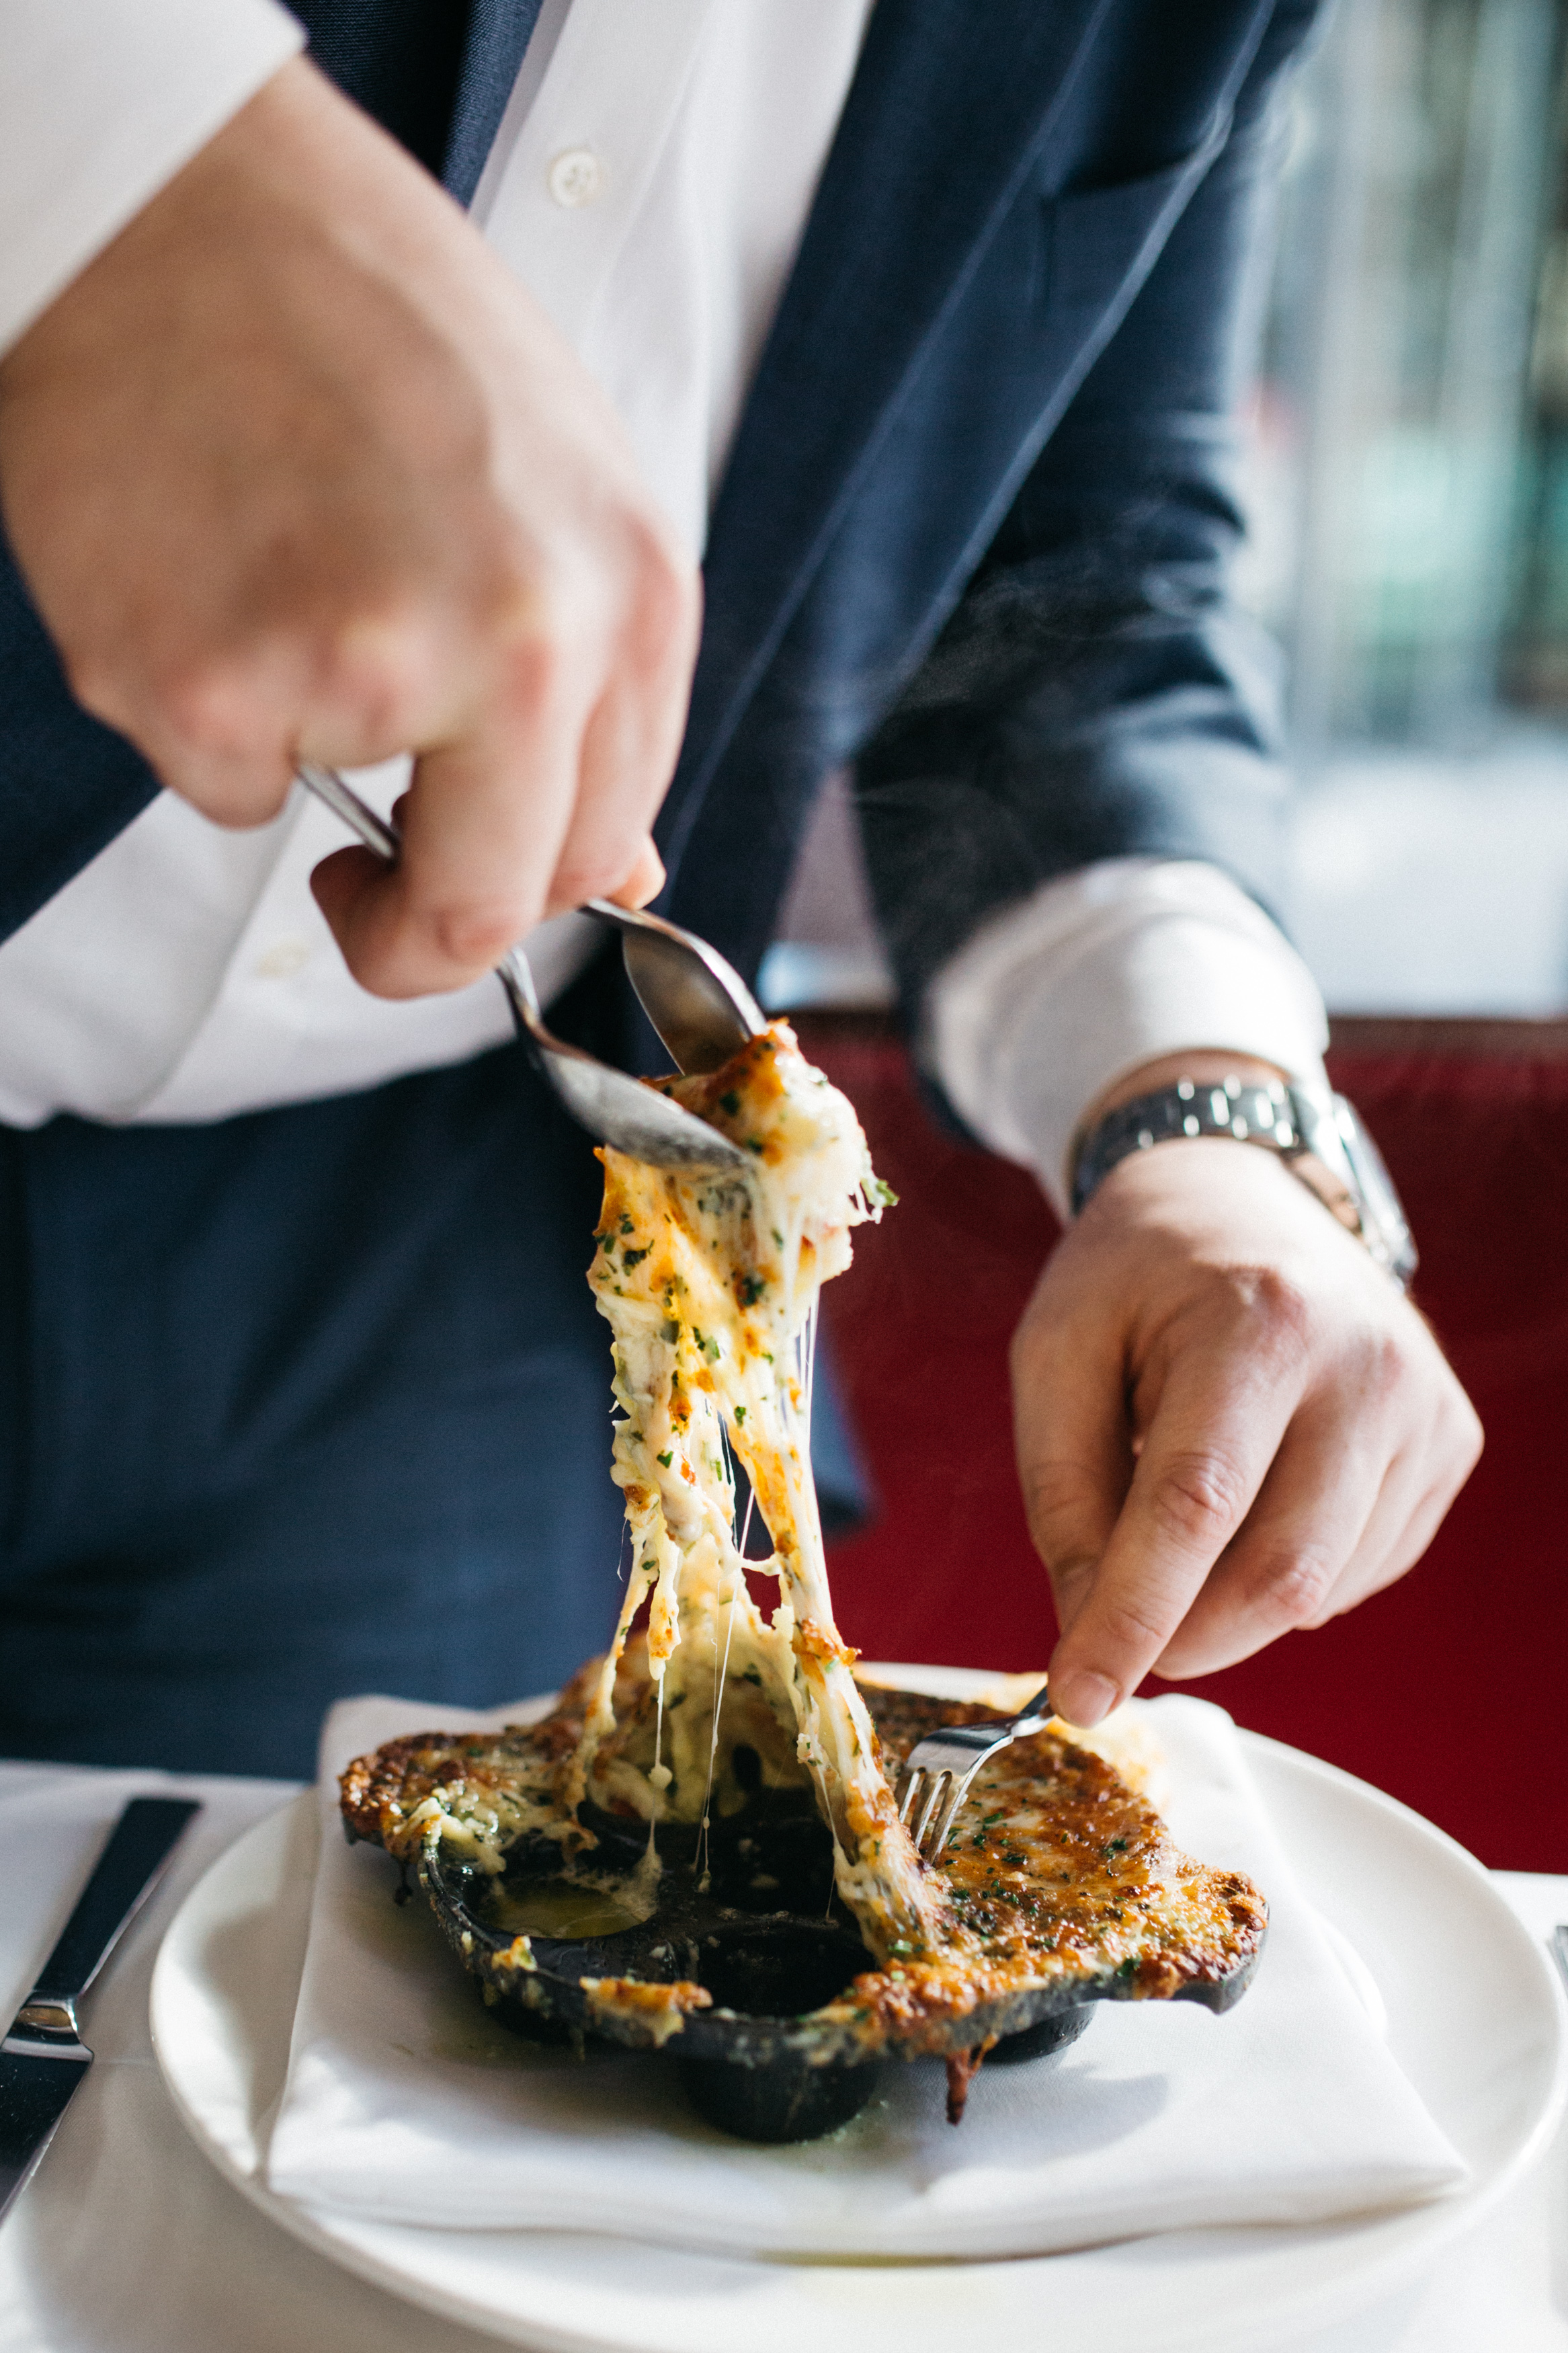 chicago food photography // chicago cut // sandy noto